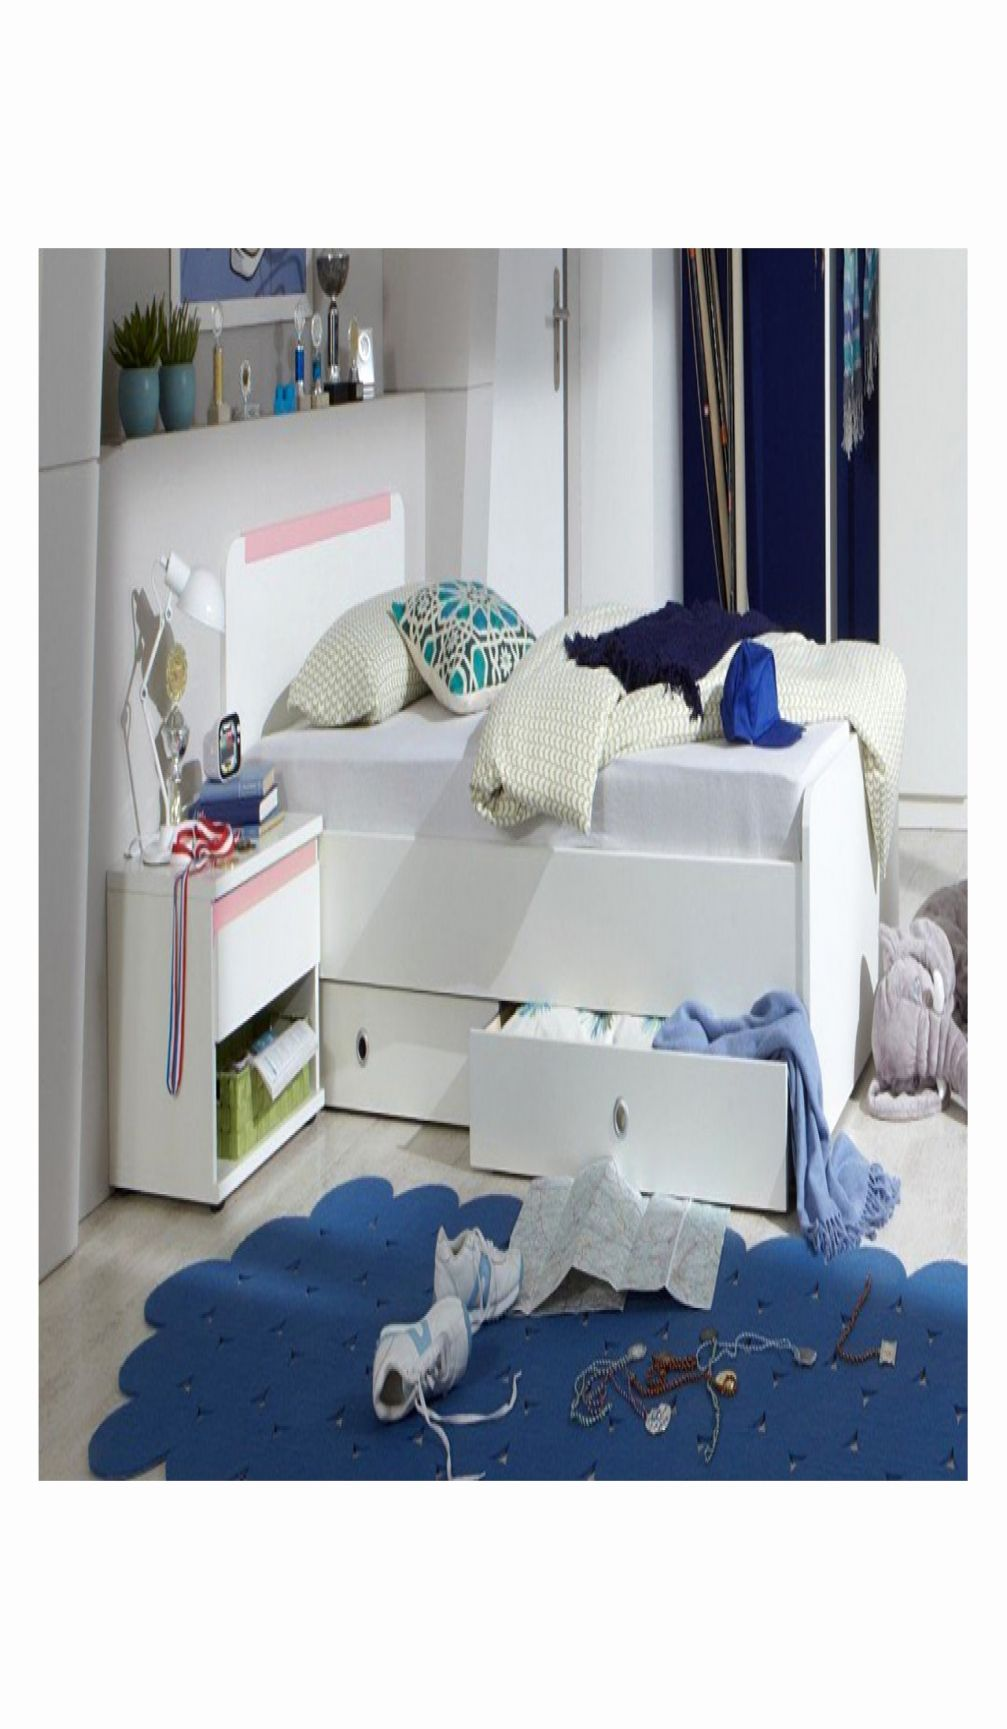 Chambre A Coucher Complete Fille Ado Pour Chambre Enfant But Chambre Fille In 2020 Toddler Bed Home Decor Bed